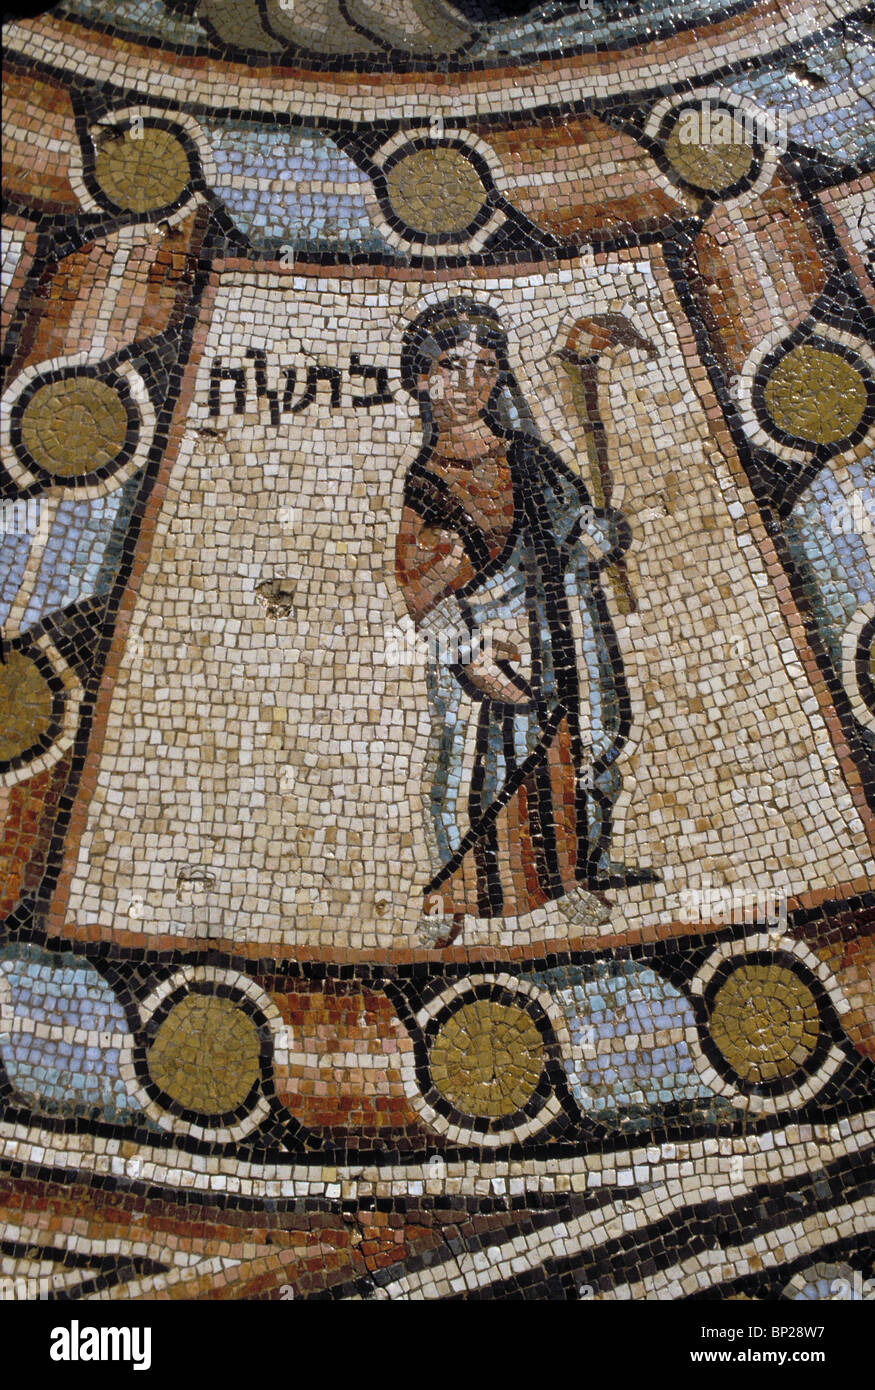 2363. HAMAT TIBERIAS SYNAGOGUE MOSAIC FLOOR. DETAIL FROM THE ZODIAC PANEL DEPICTING THE SIGN OF VIRGO - Stock Image